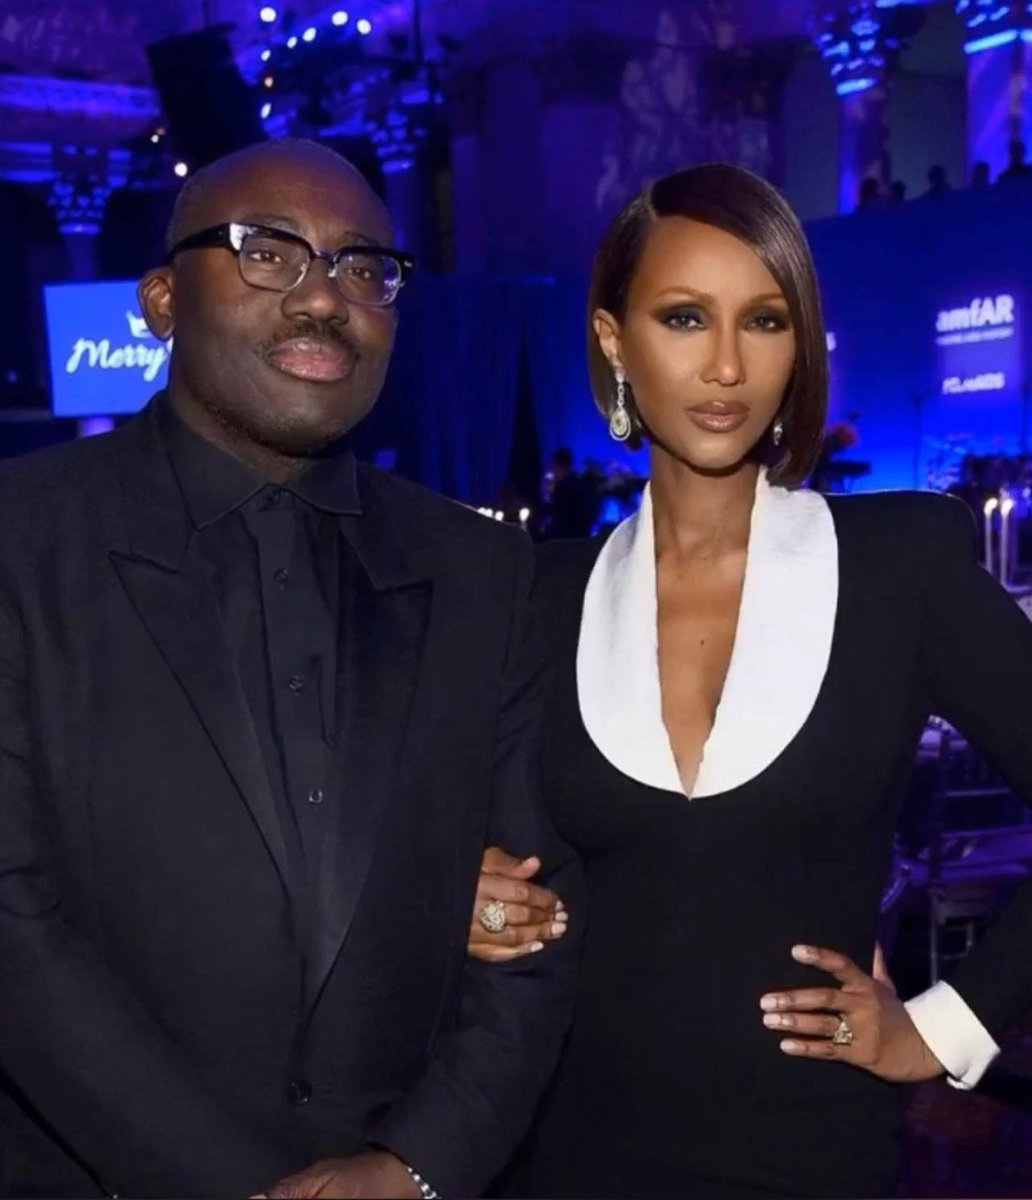 CONGRATS to my dearest friend @edward_enninful OBE who has been promoted to European Editorial Director of all owned and operated European editions of Vogue, which includes the UK, France, Italy, Germany and Spain. @britishvogue @condenast #EdwardEnniful #BlackExcellence